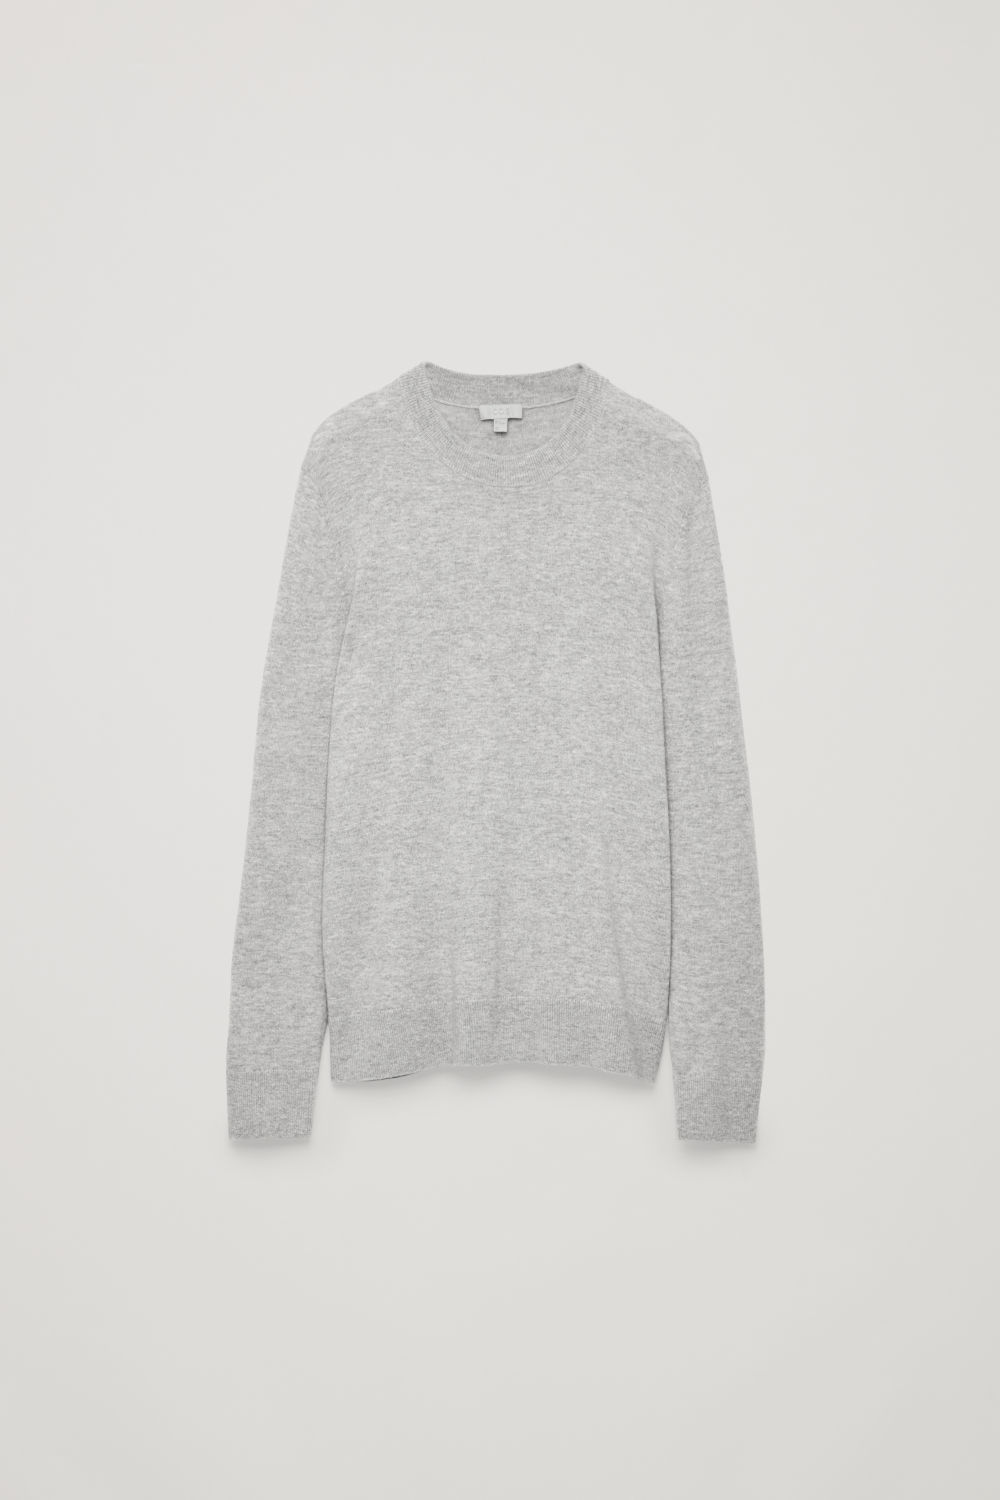 WOOL-YAK CREW-NECK JUMPER